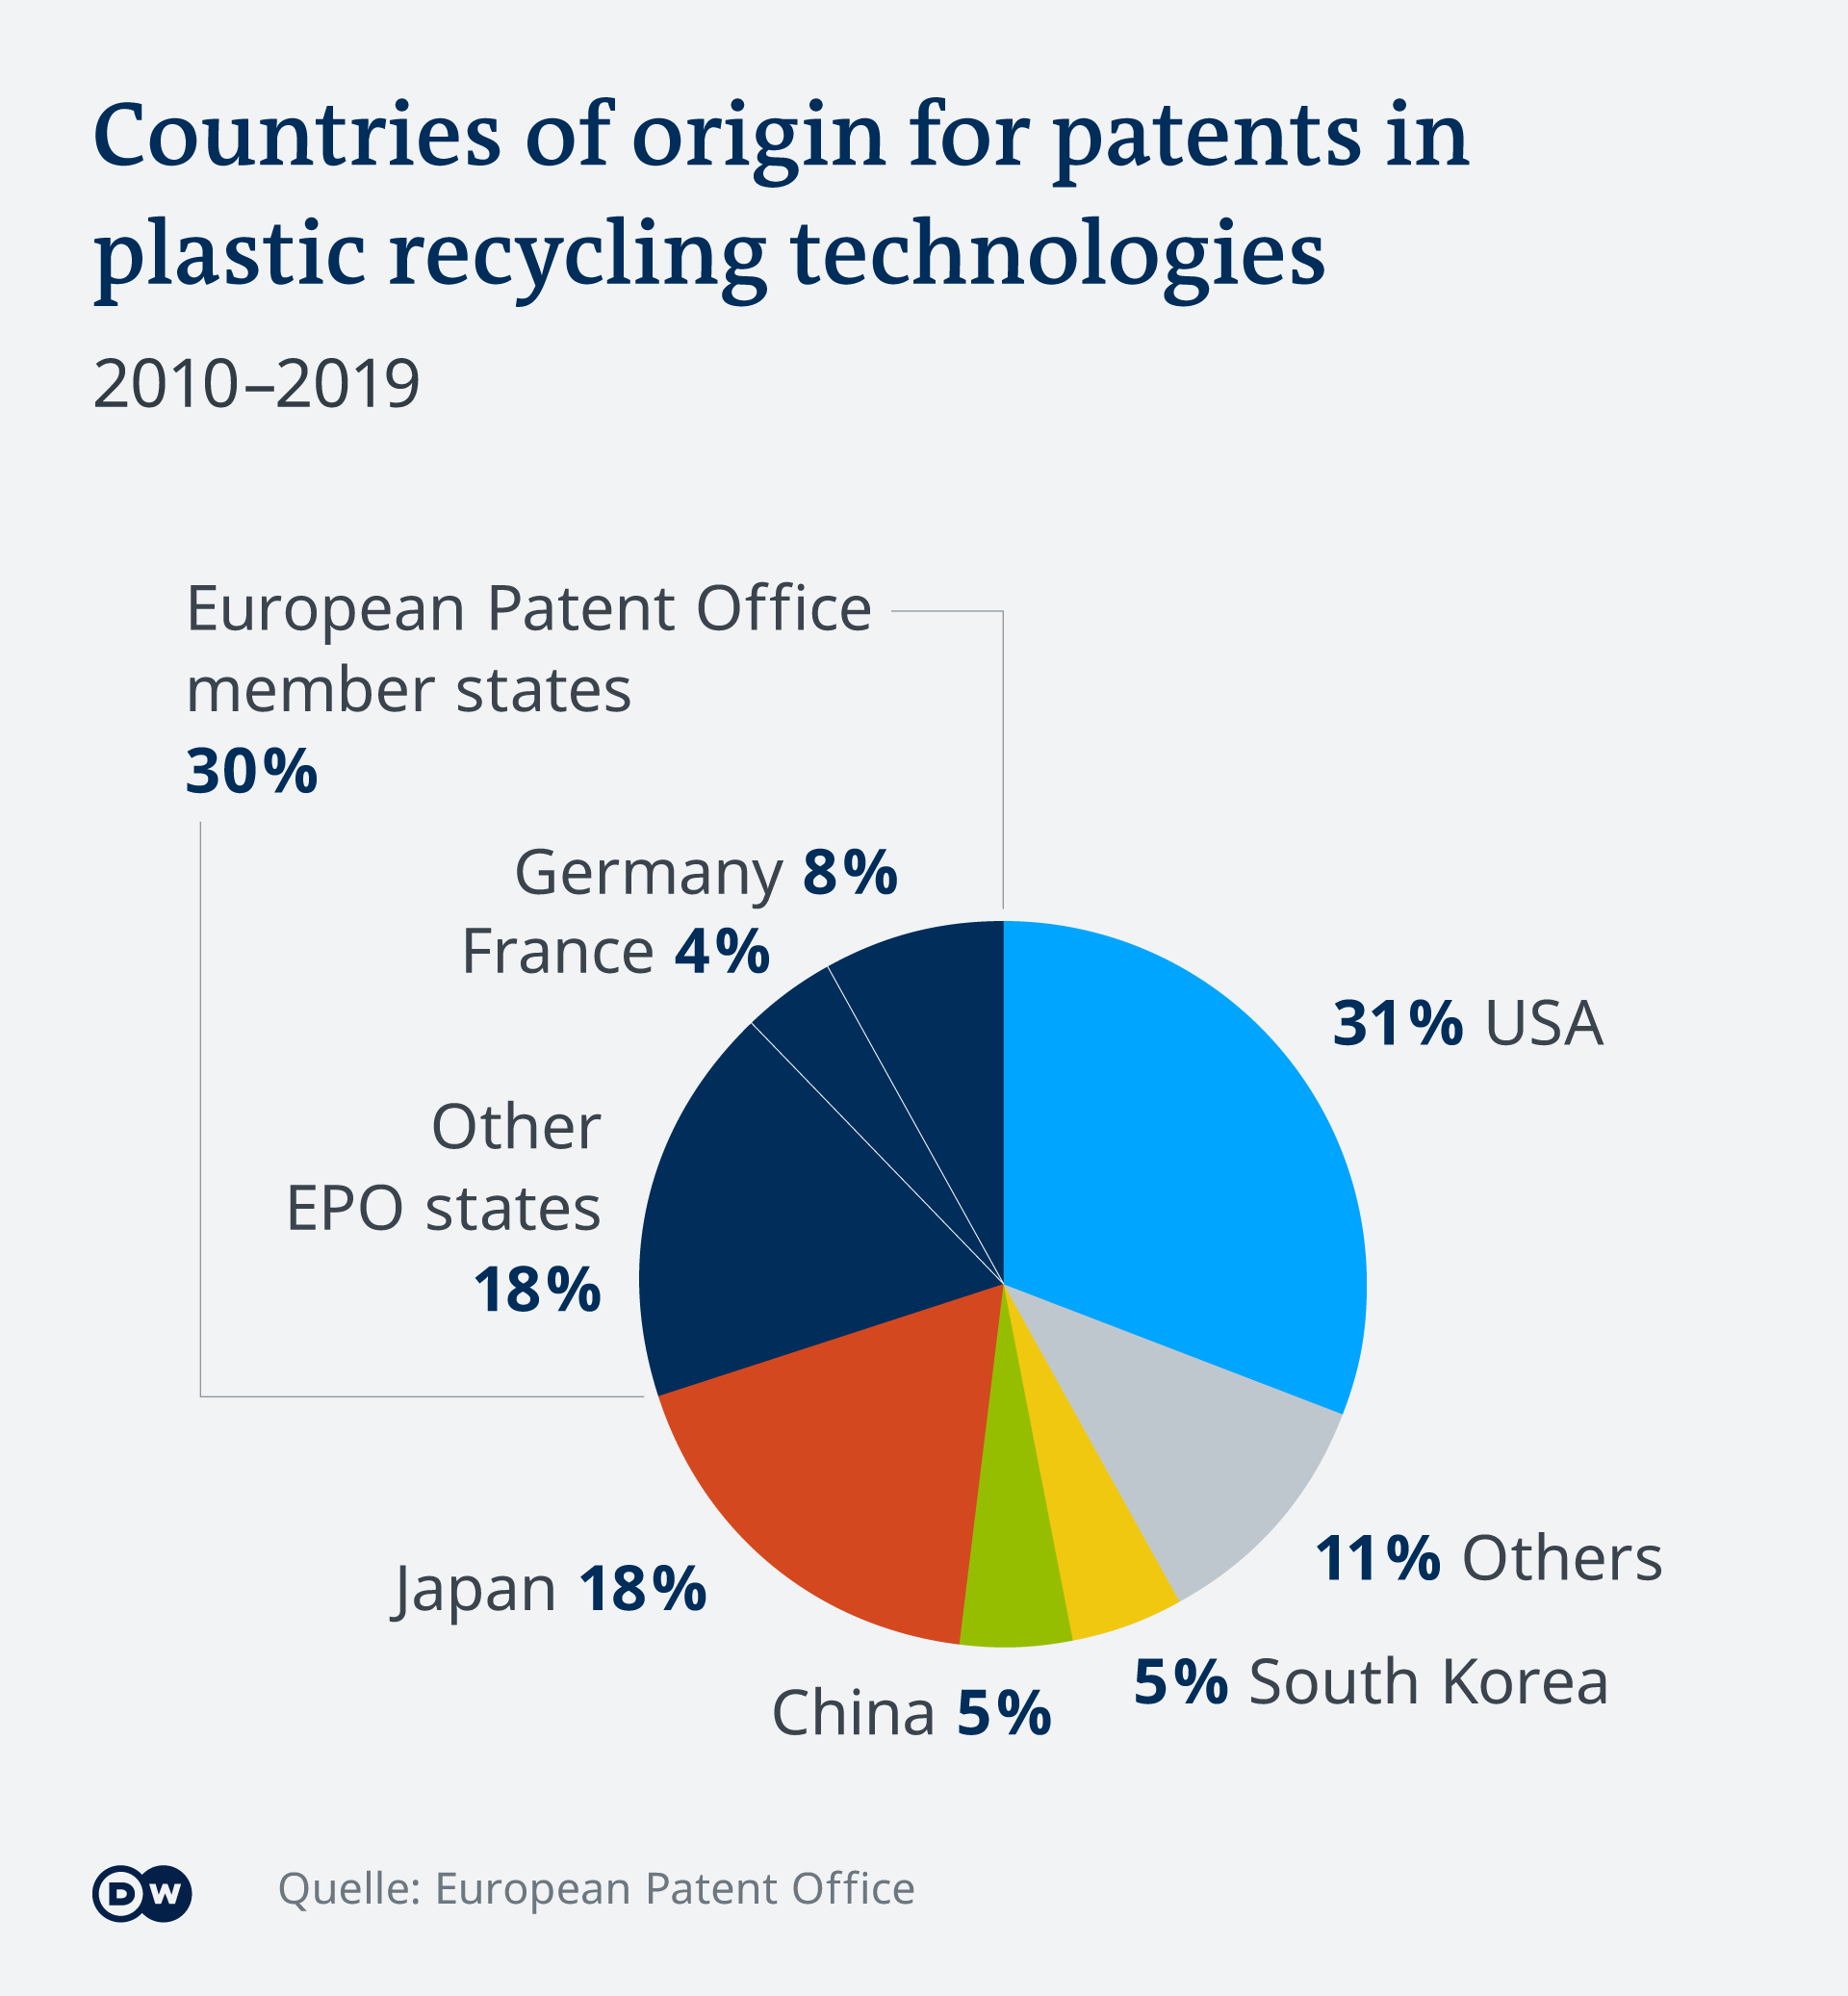 Countries of origin for patents in plastic recycling technologies